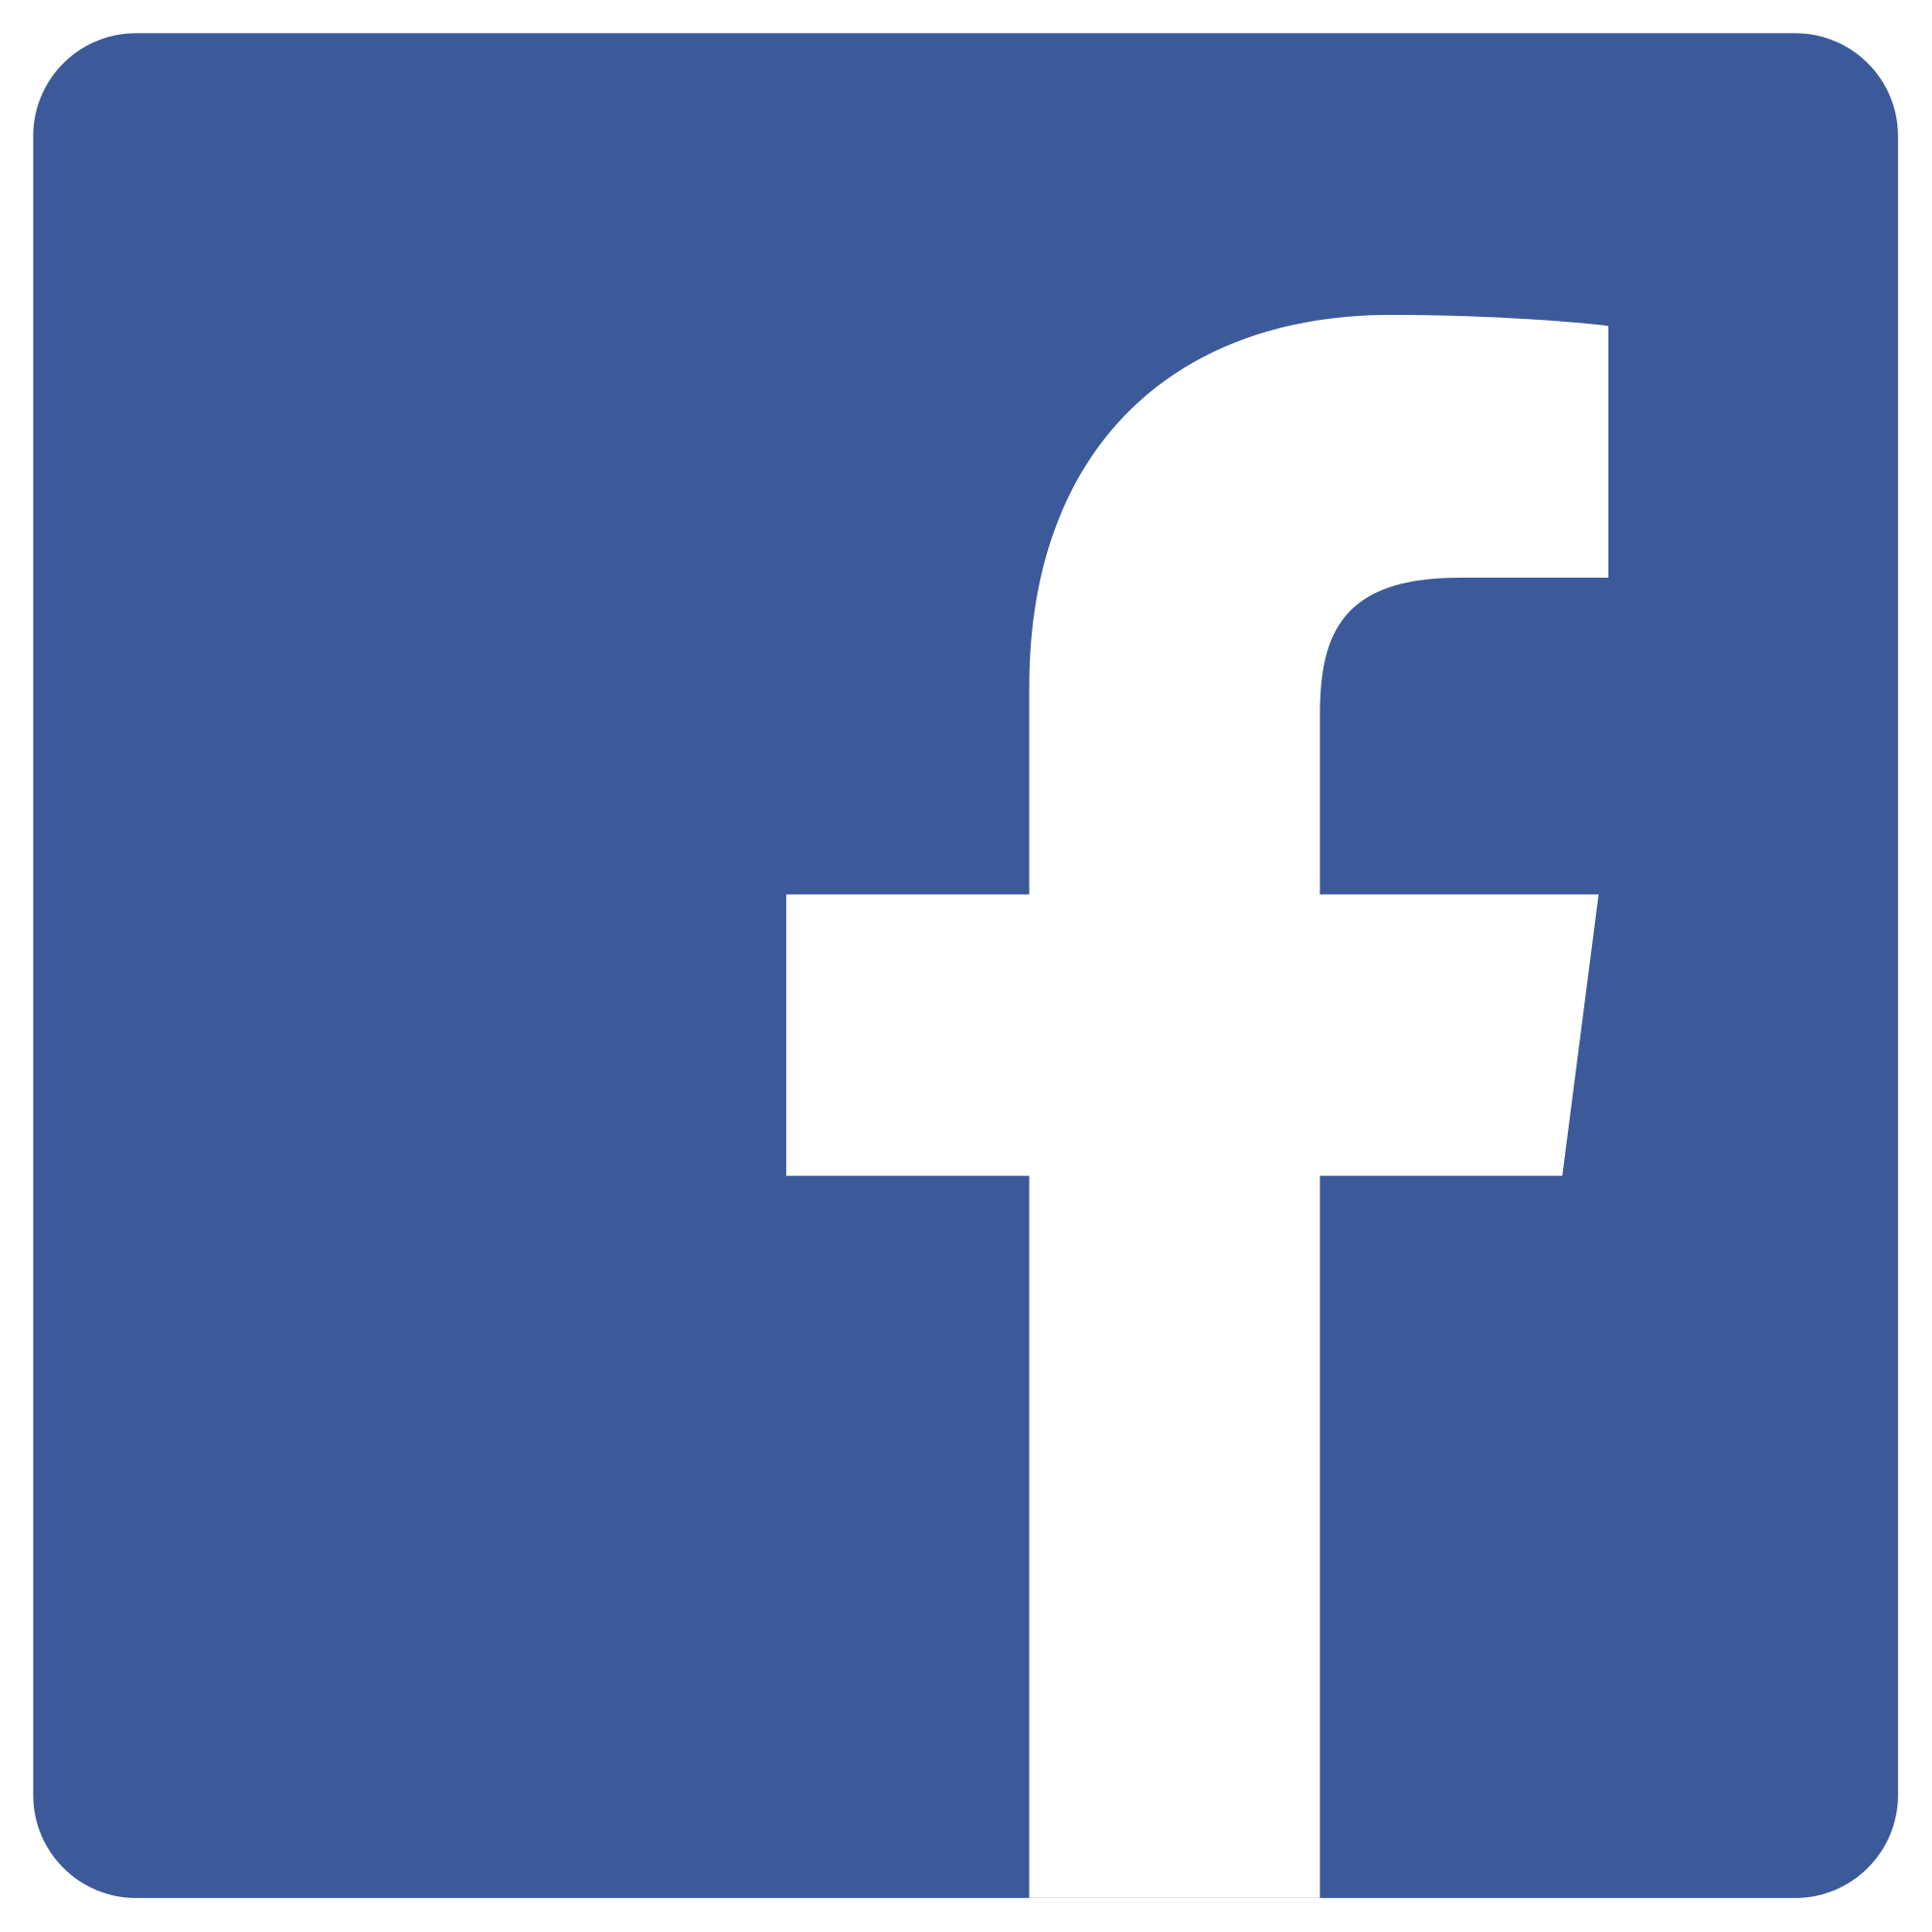 Check out the OG facebook page for Outlook Group's 40th anniversary